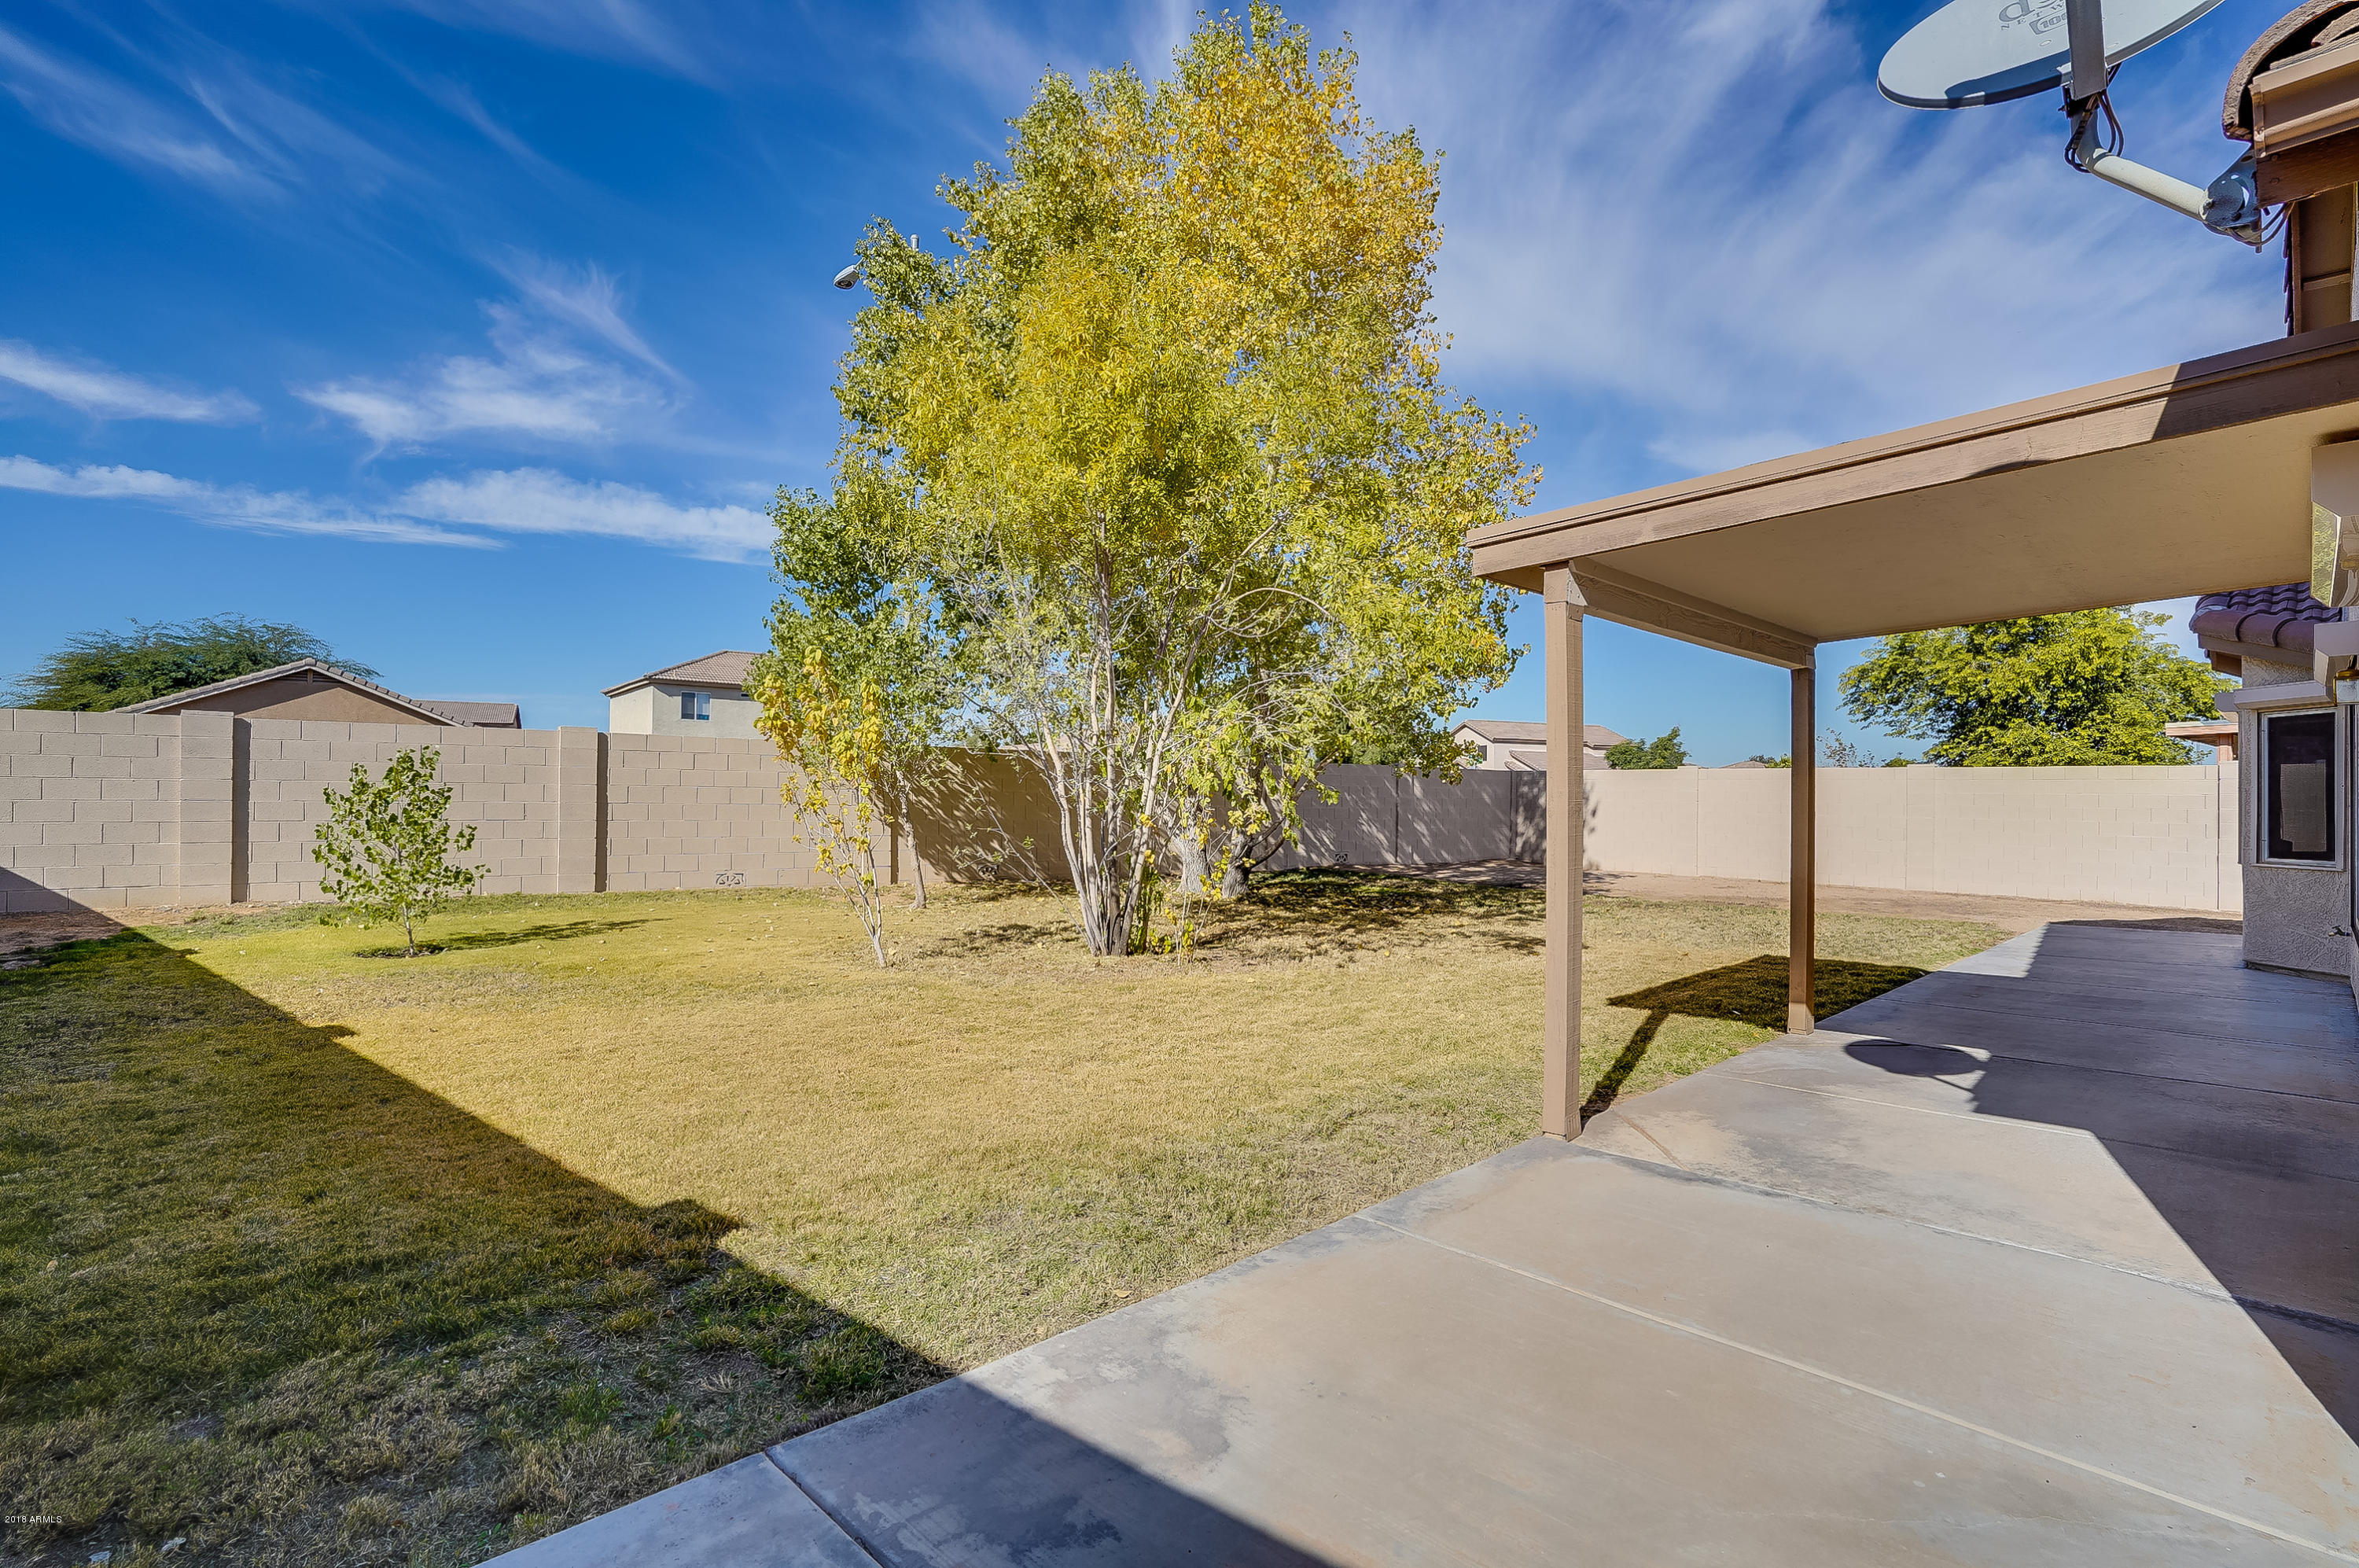 12506 N 126TH Lane El Mirage, AZ 85335 - MLS #: 5851560